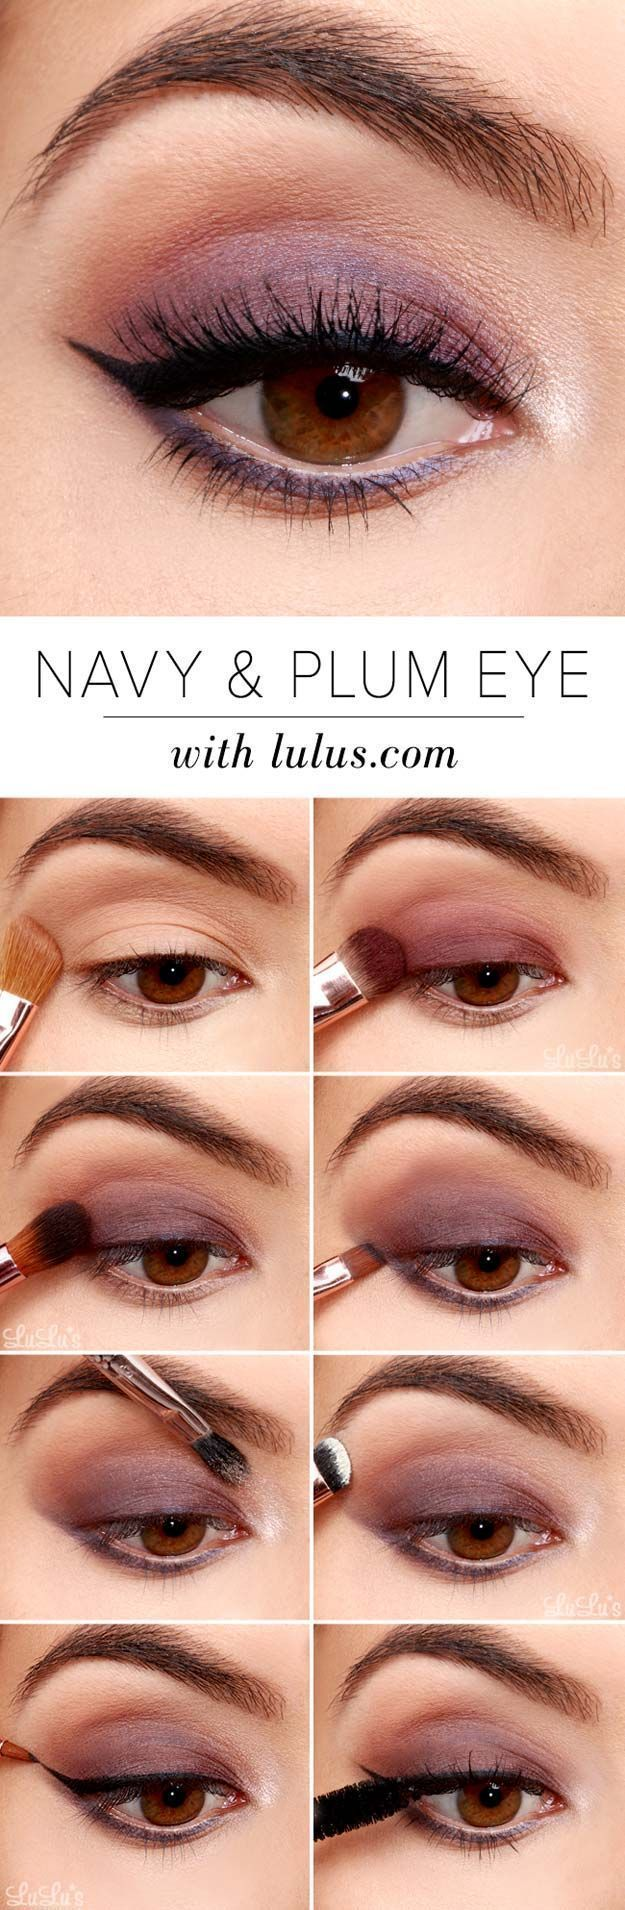 Best Eyeshadow Tutorials - Navy and Plum Smokey Eyeshadow Tutorial - Easy Step by Step How To For Eye Shadow - Cool Makeup Tricks and Eye Makeup Tutorial With Instructions - Quick Ways to Do Smoky Eye, Natural Makeup, Looks for Day and Evening, Brown and Blue Eyes - Cool Ideas for Beginners and Teens http://diyprojectsforteens.com/best-eyeshadow-tutorials #makeupideasforteens #eyemakeup